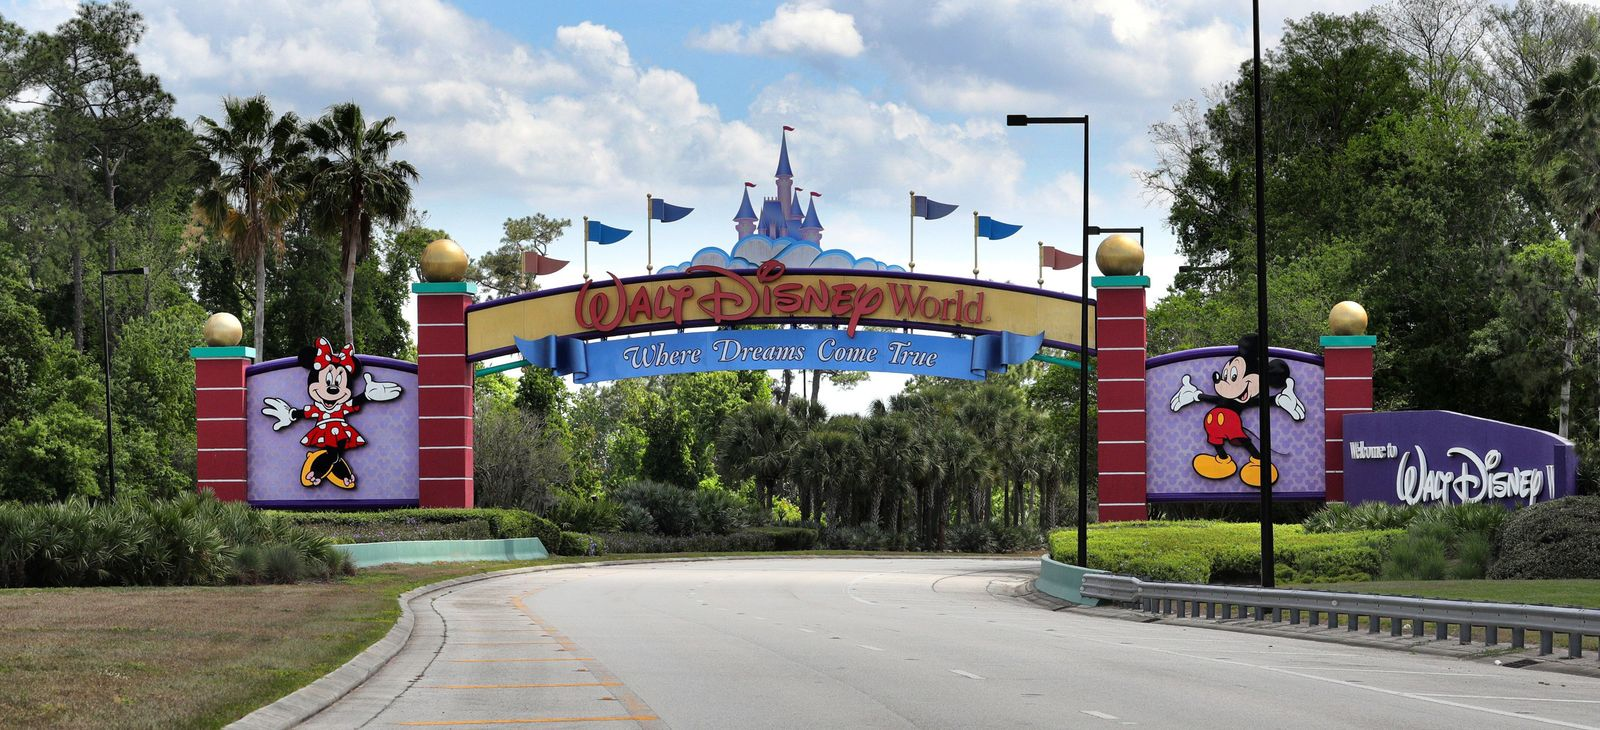 NBA reportedly eyes Disney World as option to host games